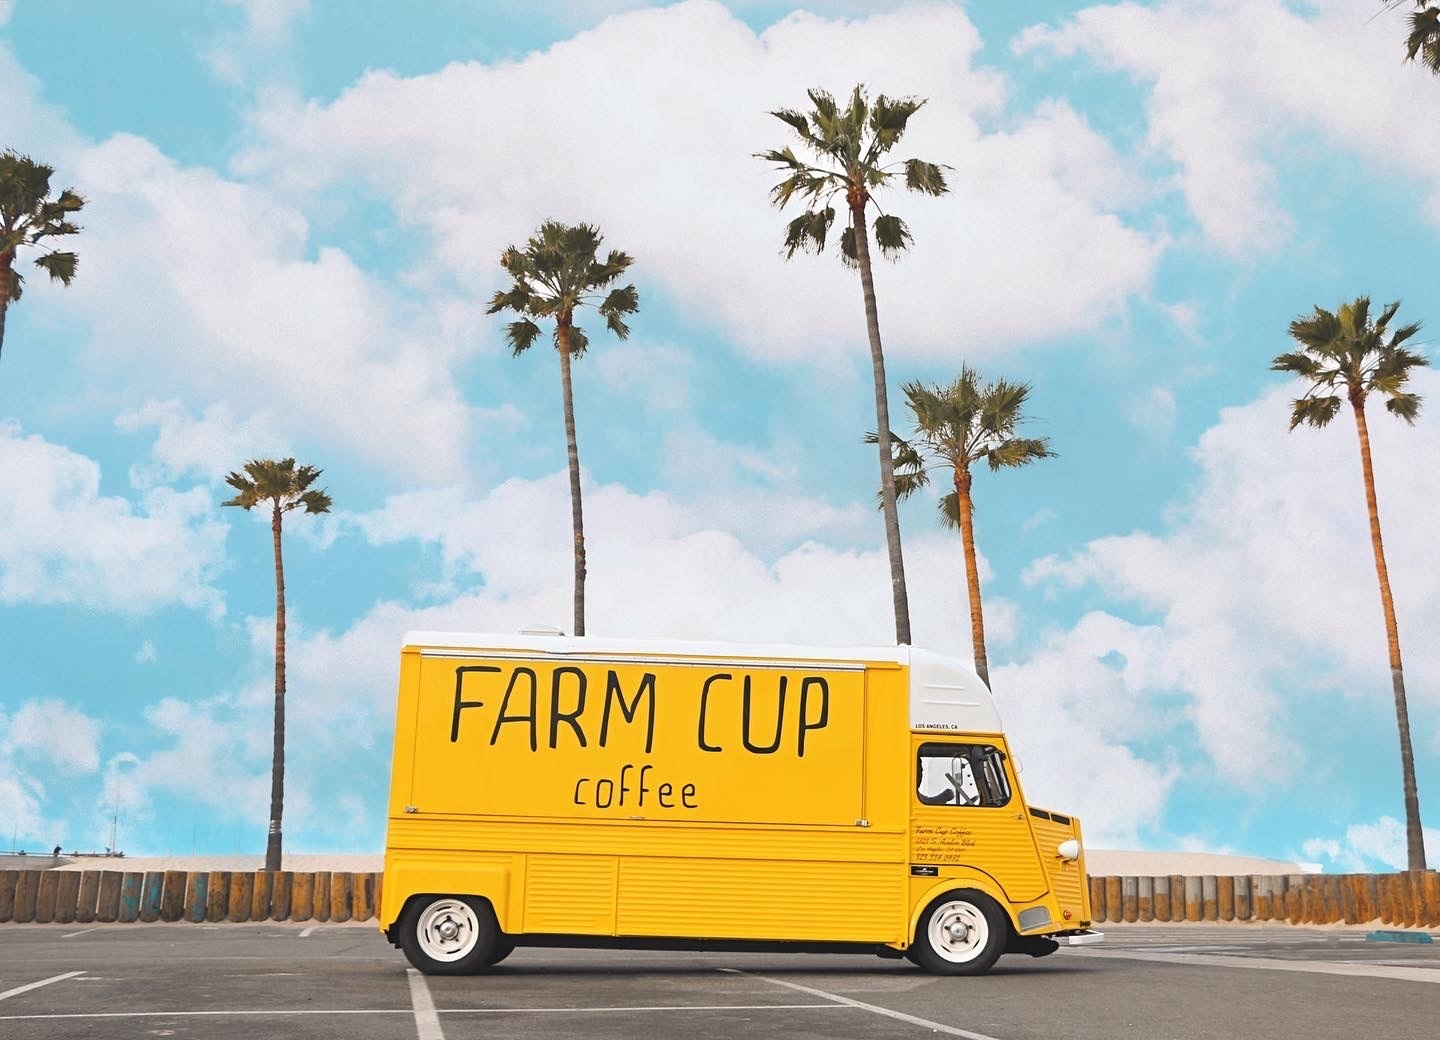 Farm Cup Coffee's bright yellow van will park permanently at a new West Hollywood space, here backgrounded by palm trees and blue sky.